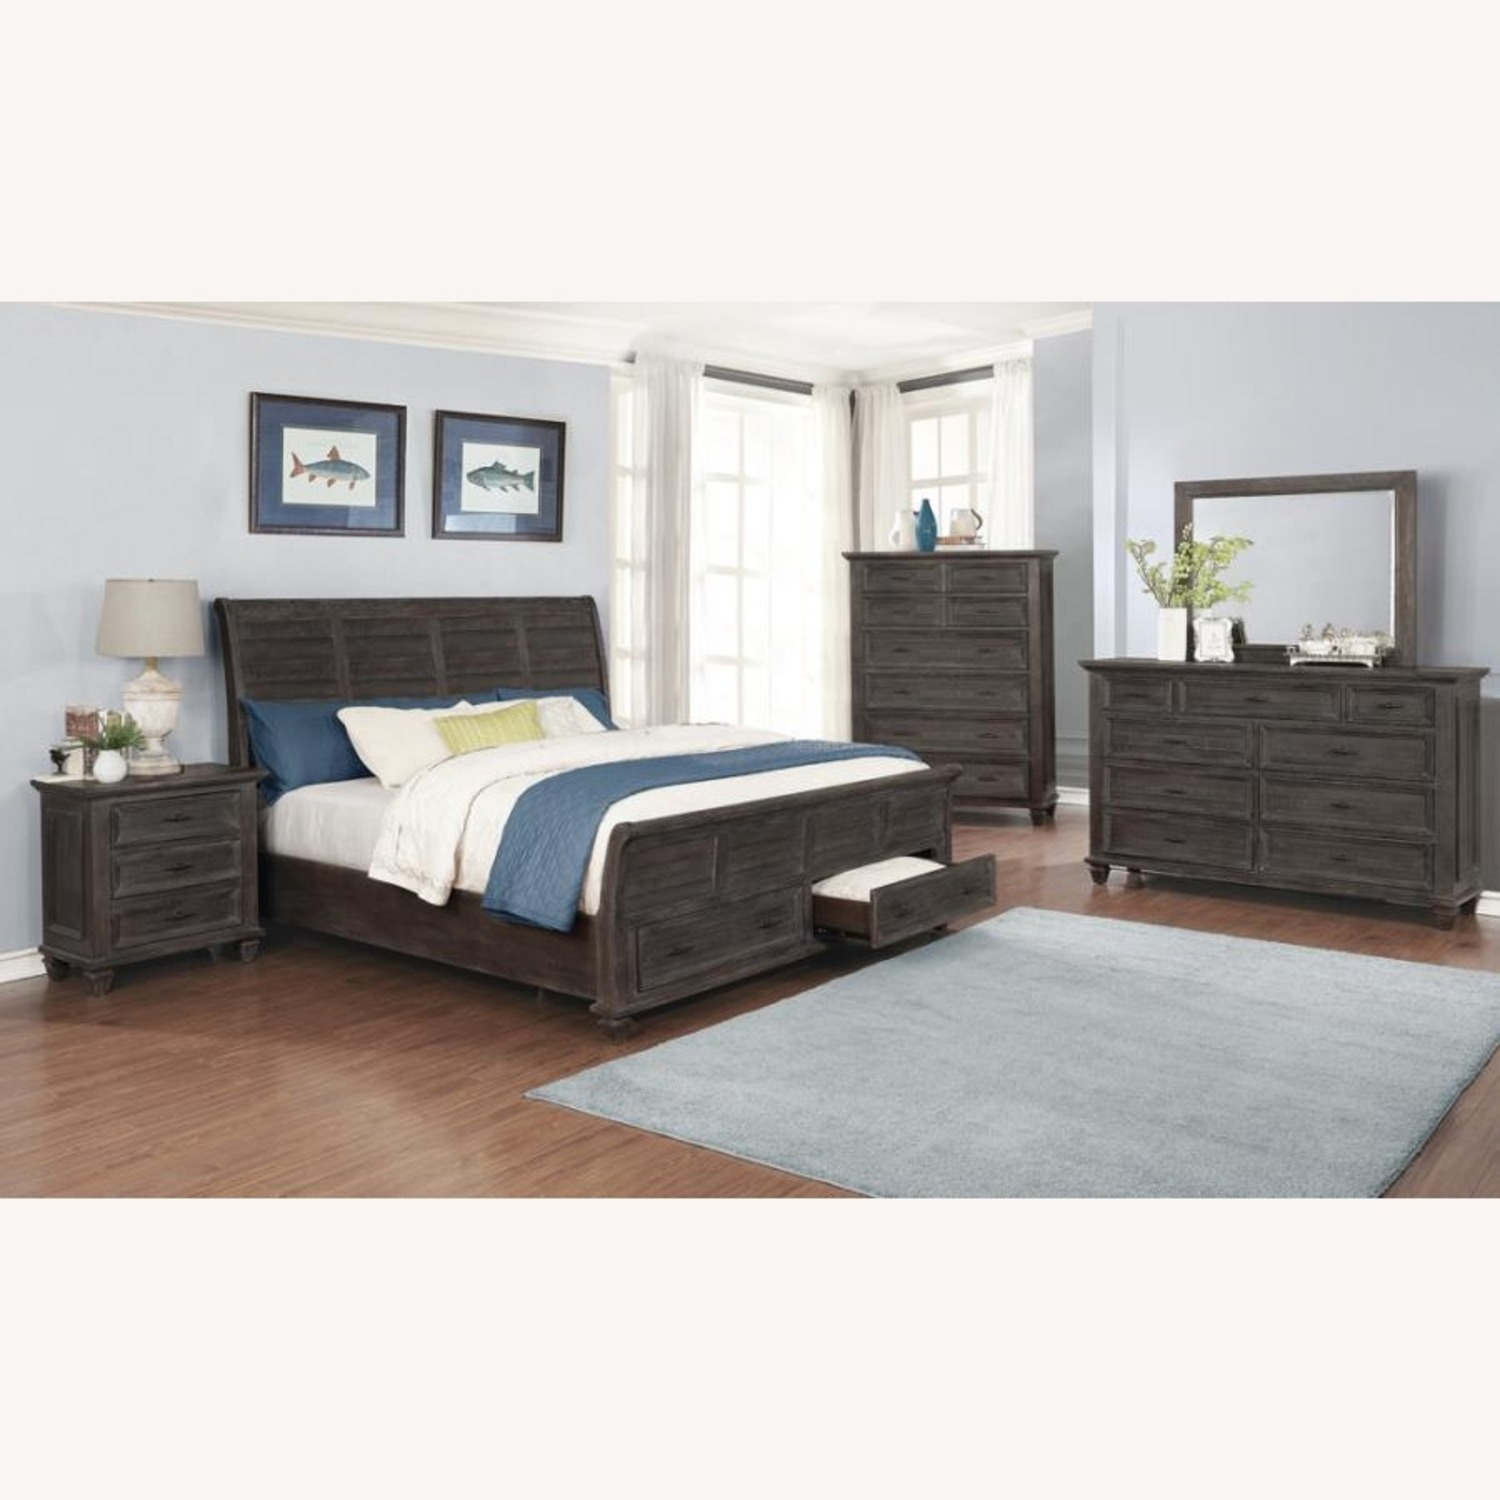 Queen Storage Bed In Weathered Carbon Finish - image-2